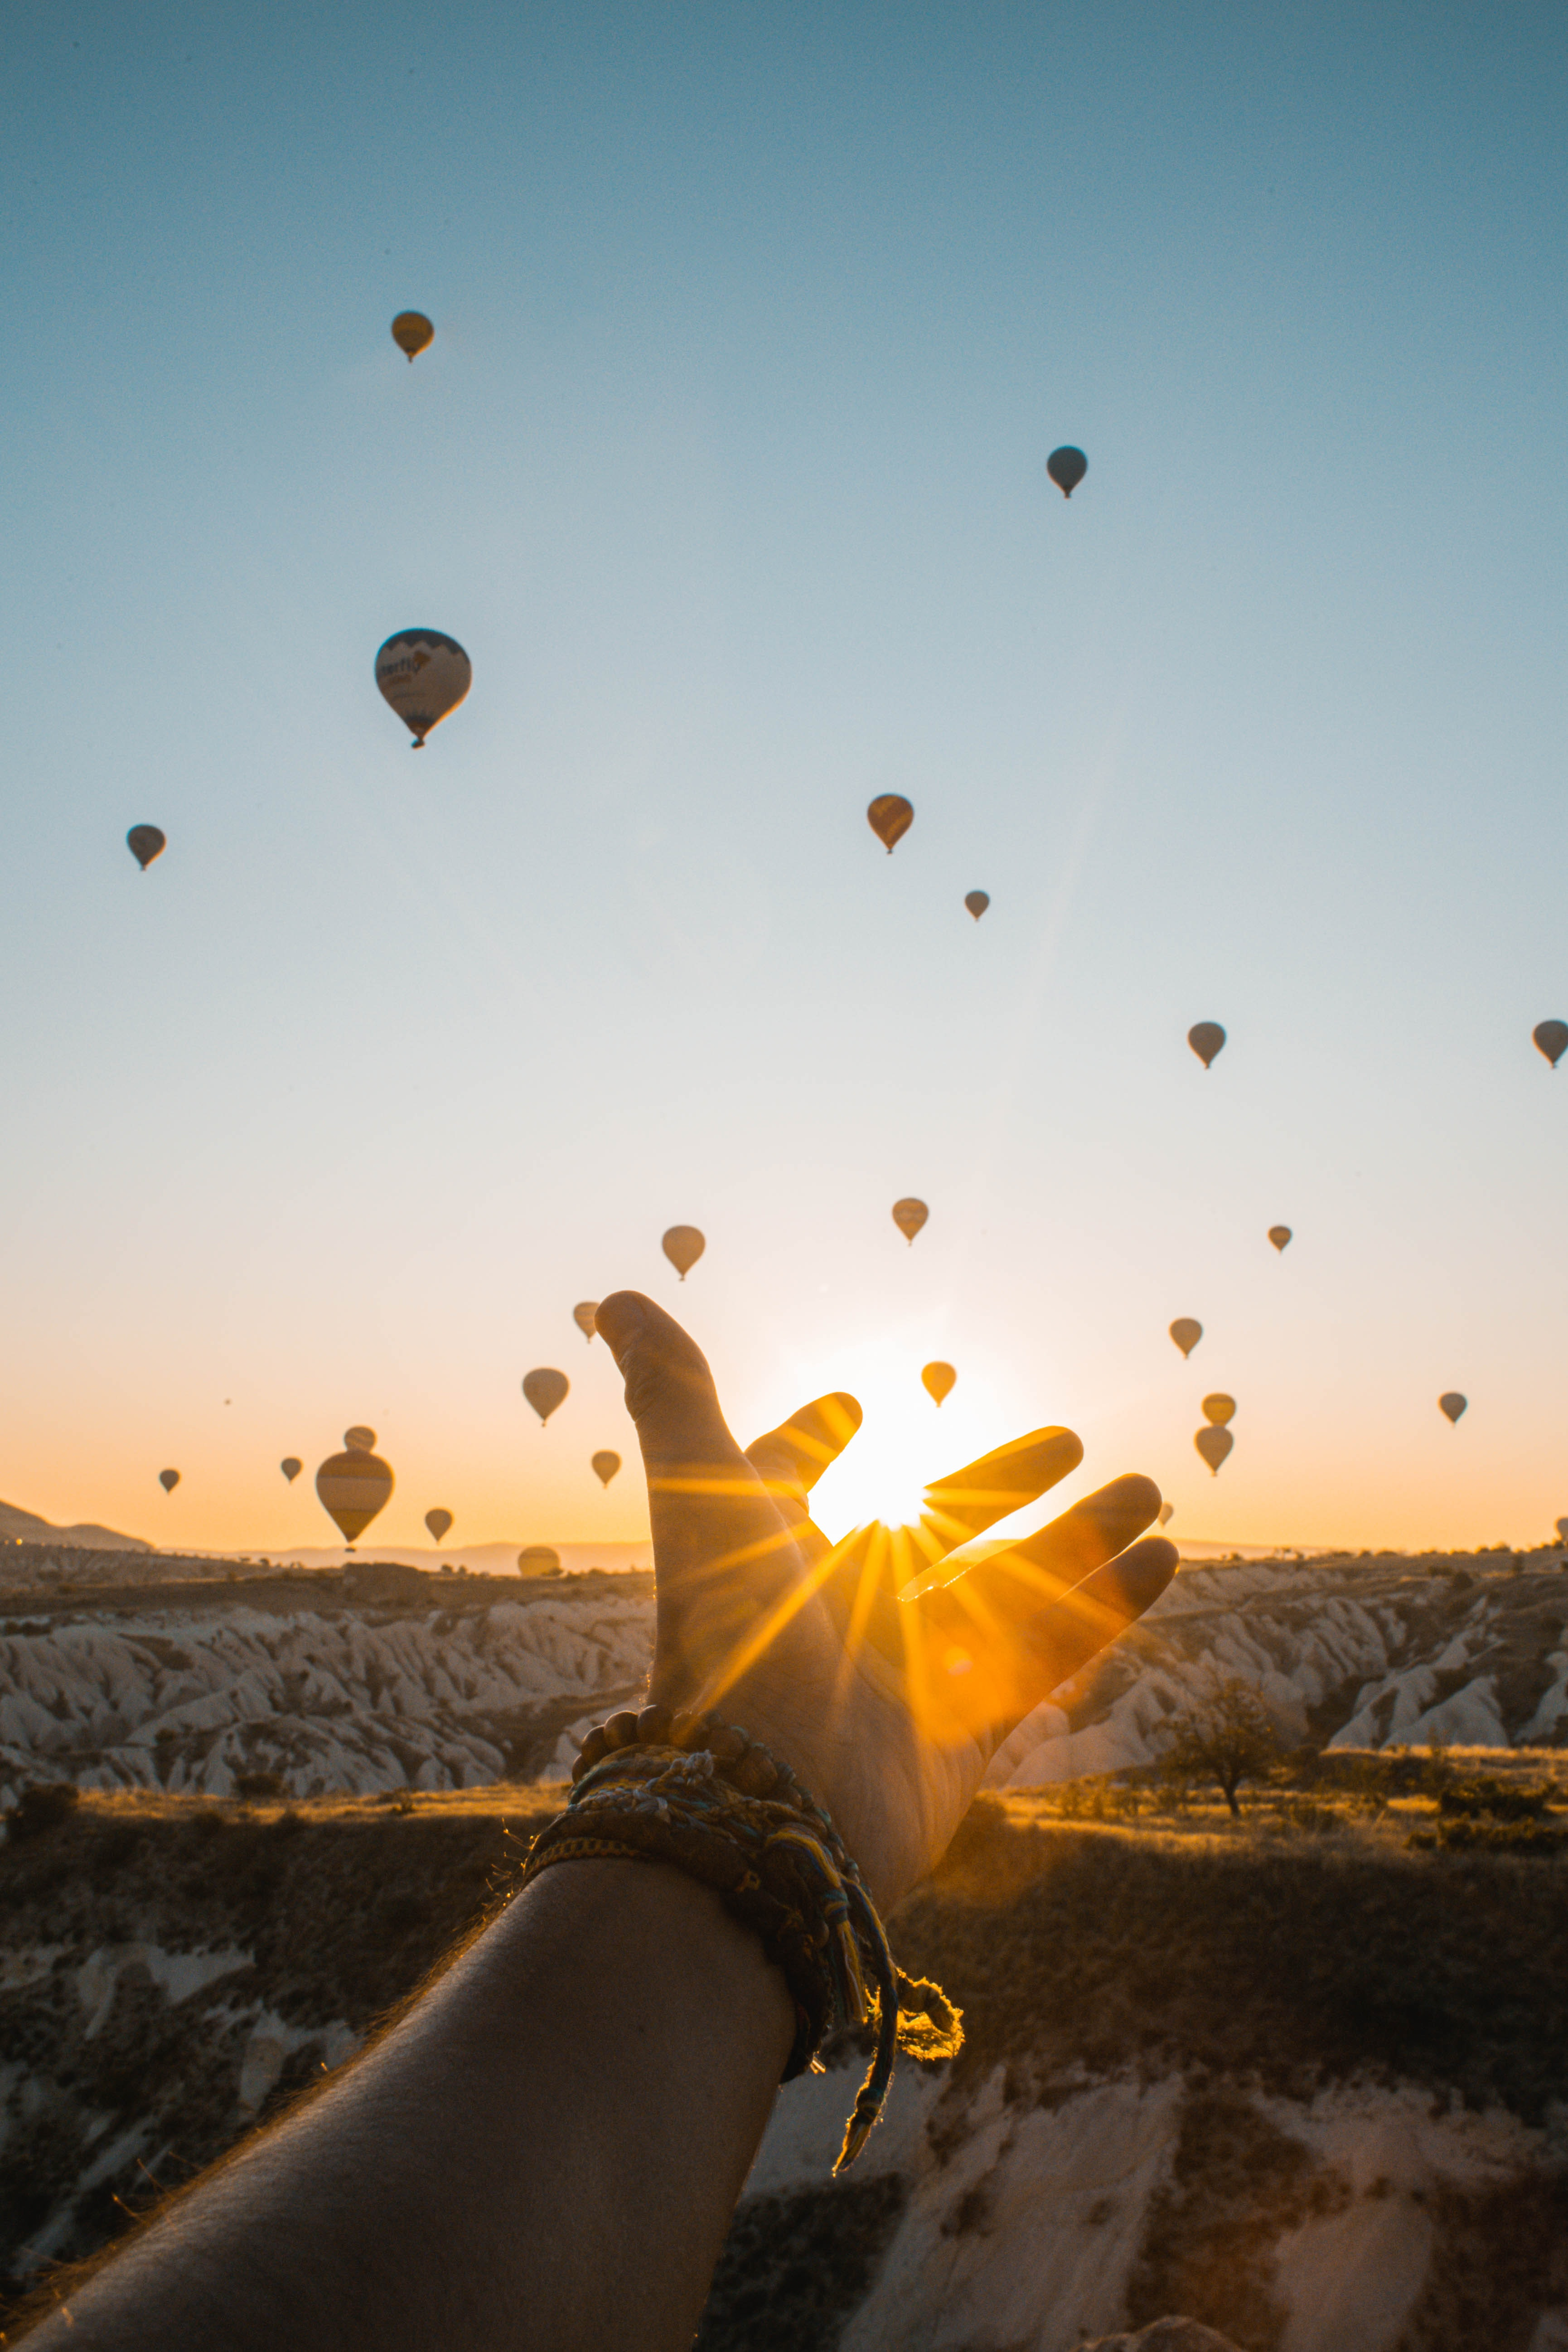 photo-of-person-s-hand-across-flying-hot-air-balloons-during-2893685